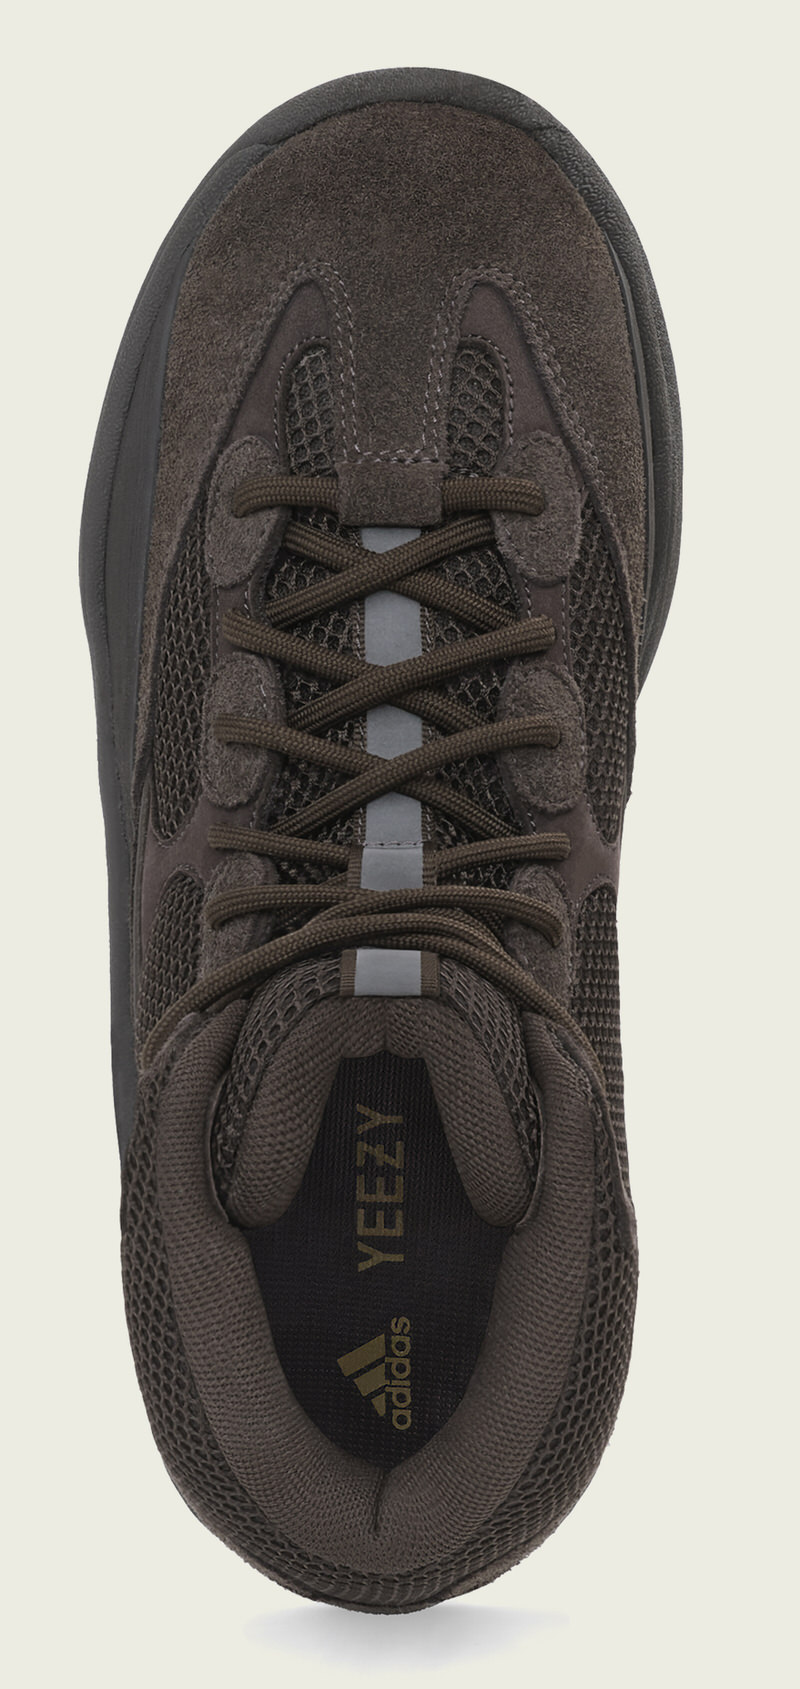 3f47853c1b9 The  200 adidas Yeezy DSRT Boot is Set to Drop in Another Colorway ...